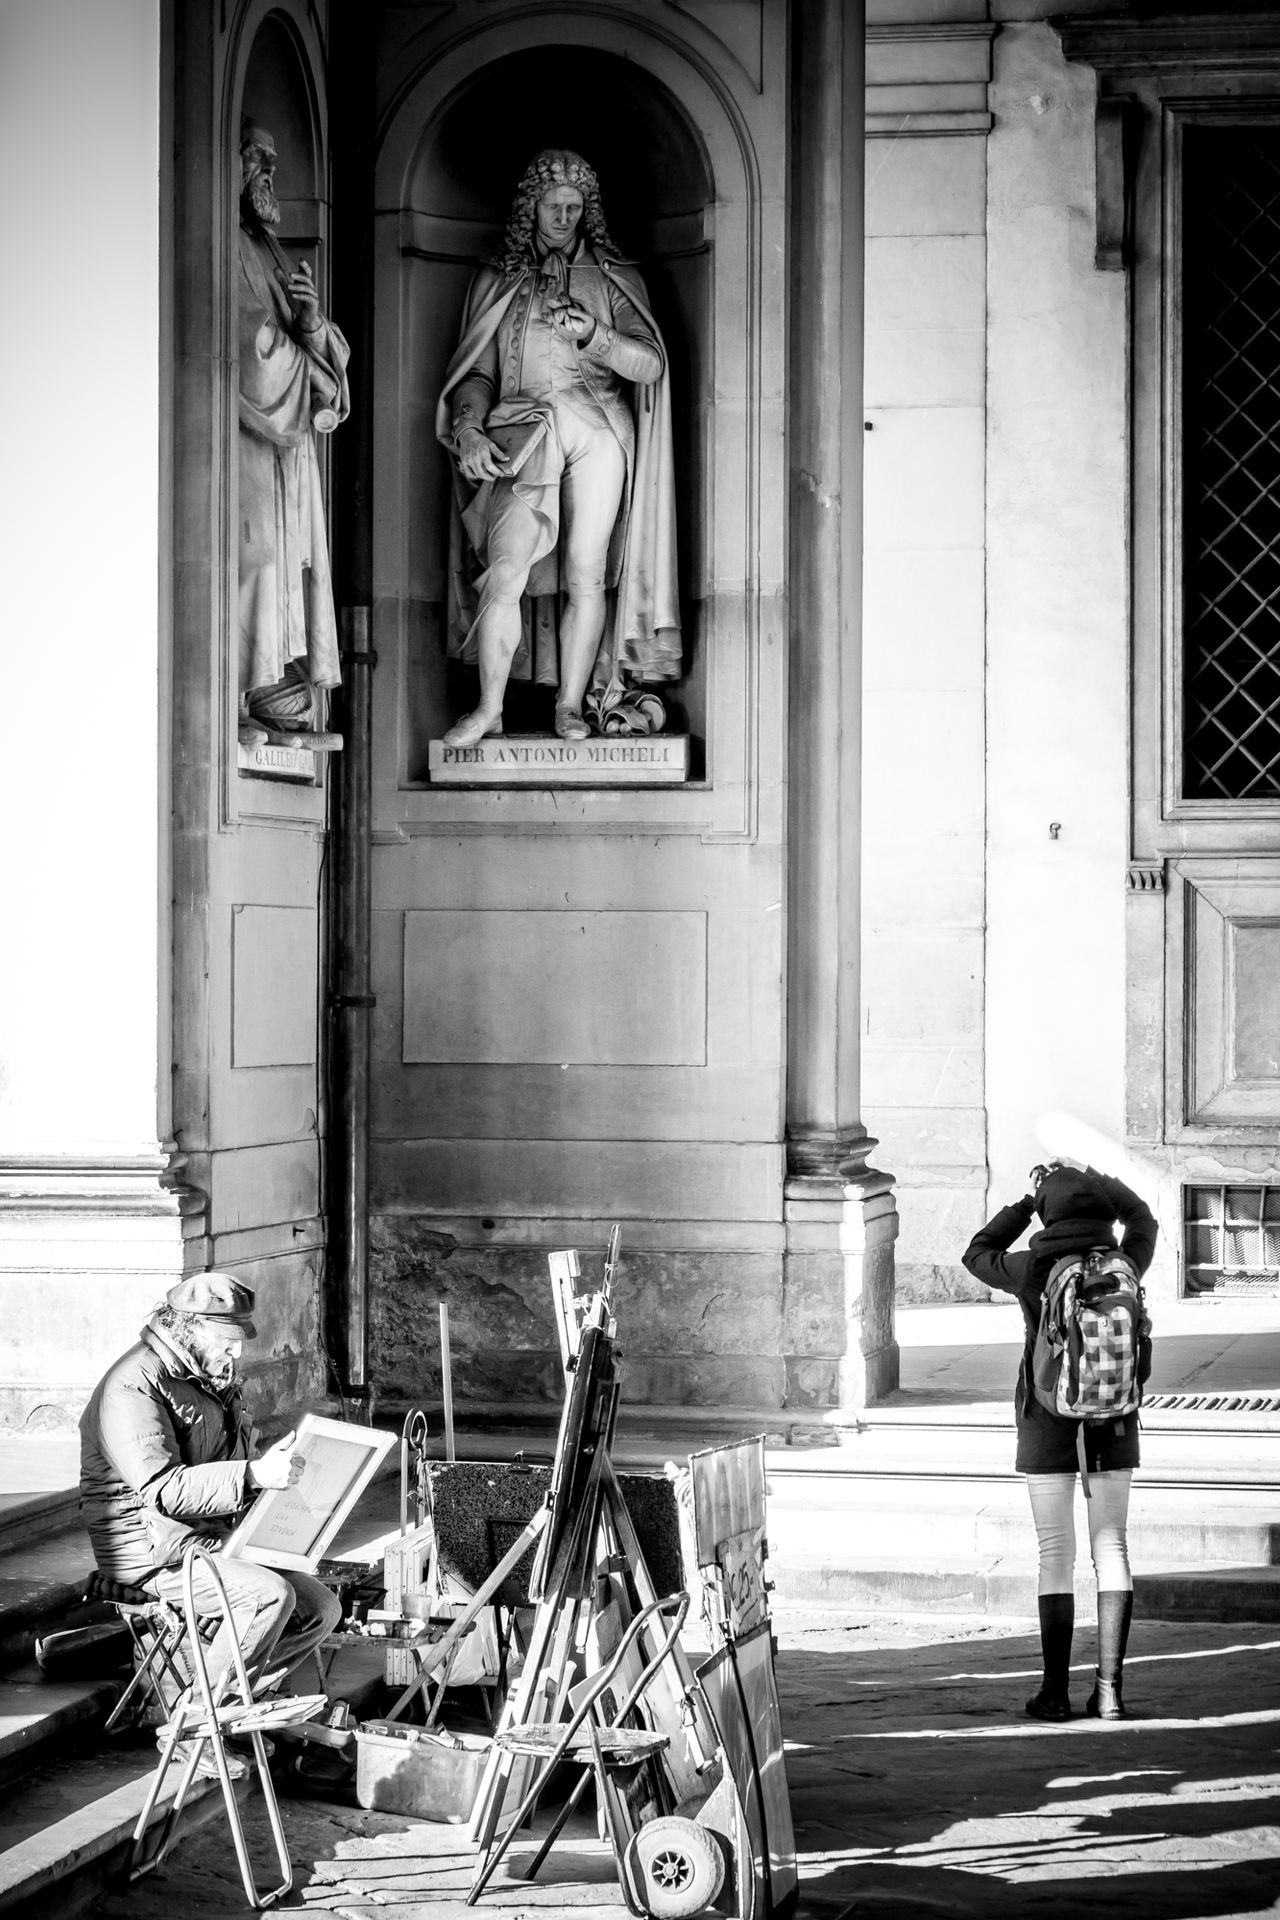 Best EyeEm Shot Best Of The Day Building Exterior Florence Italy Italy❤️ Street Photography Streetart StreetArtEverywhere Streetphotography